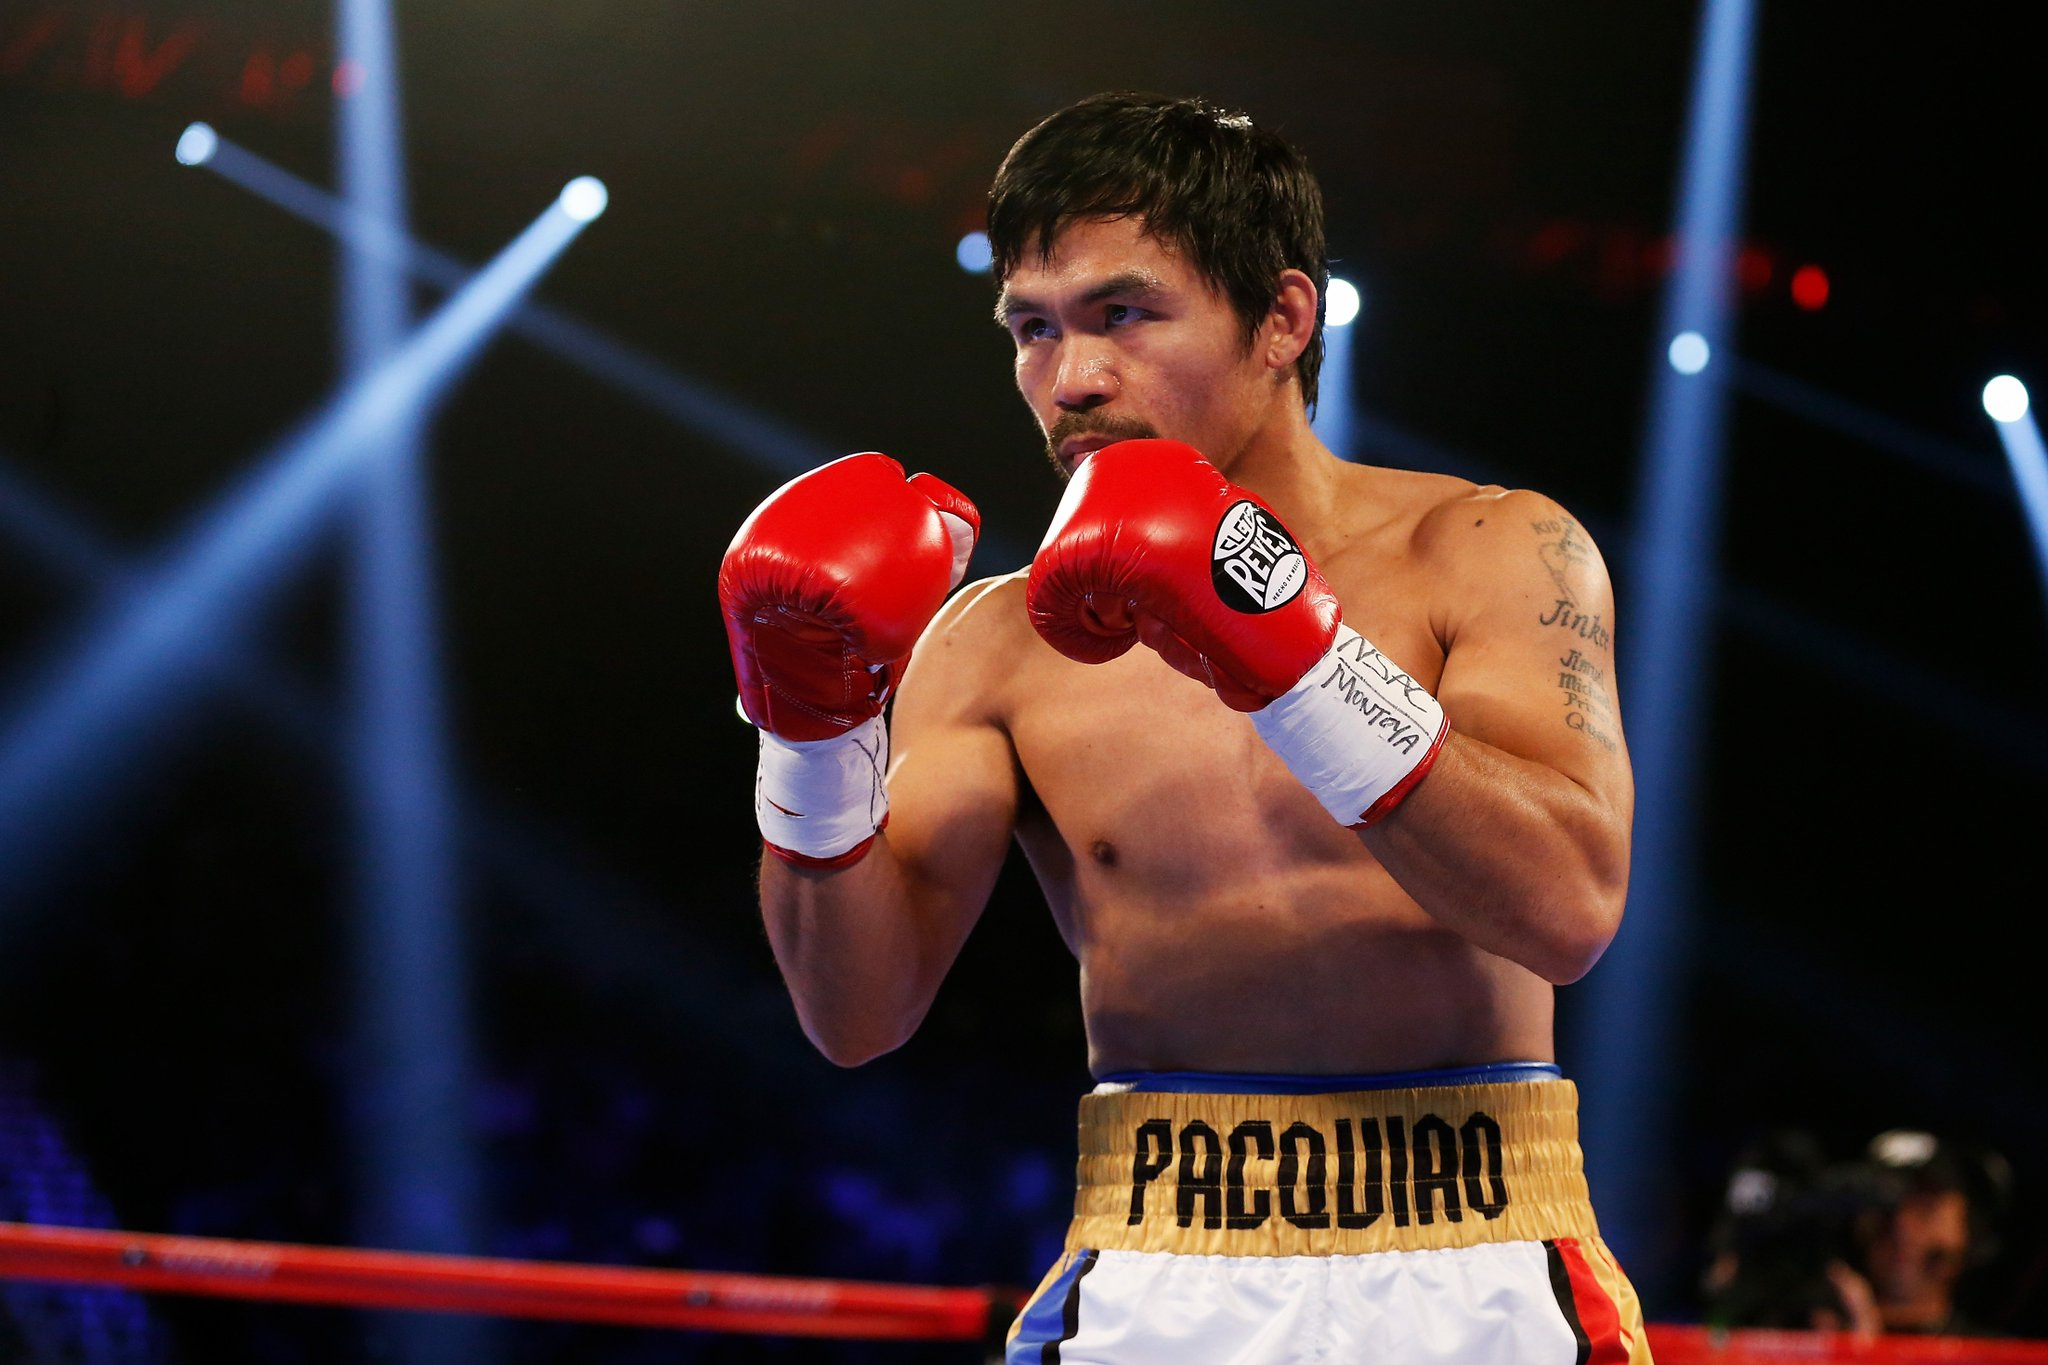 Manny Pacquiao defeats Timothy Bradley by unanimous decision #PacBradley https://t.co/O4KQO7FcnN